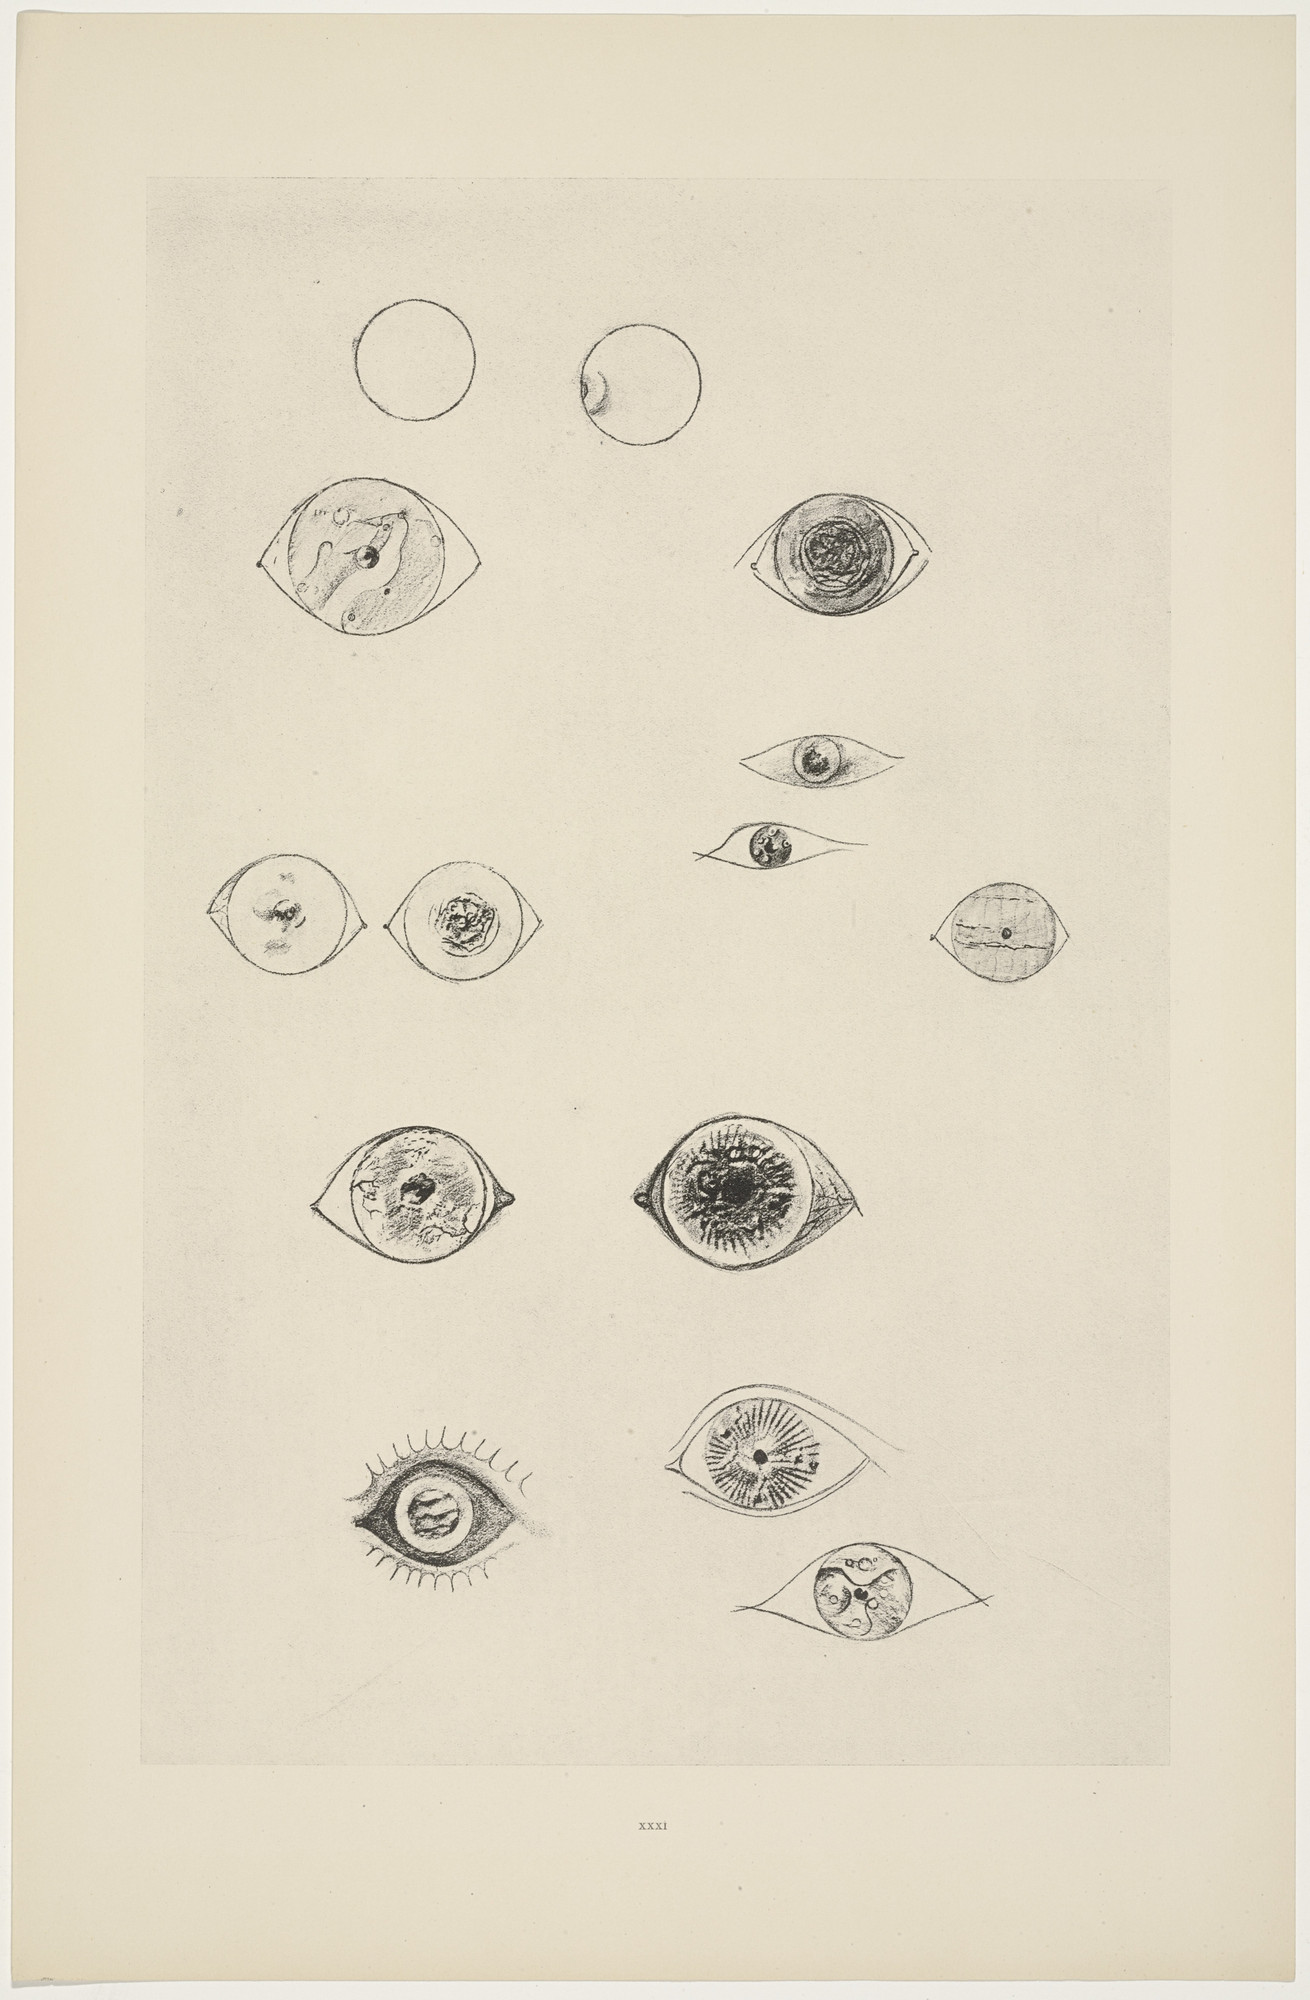 Max Ernst. Solar Currency-System (Système de monnaie solaire) from Natural History (Histoire naturelle). c. 1925, published 1926